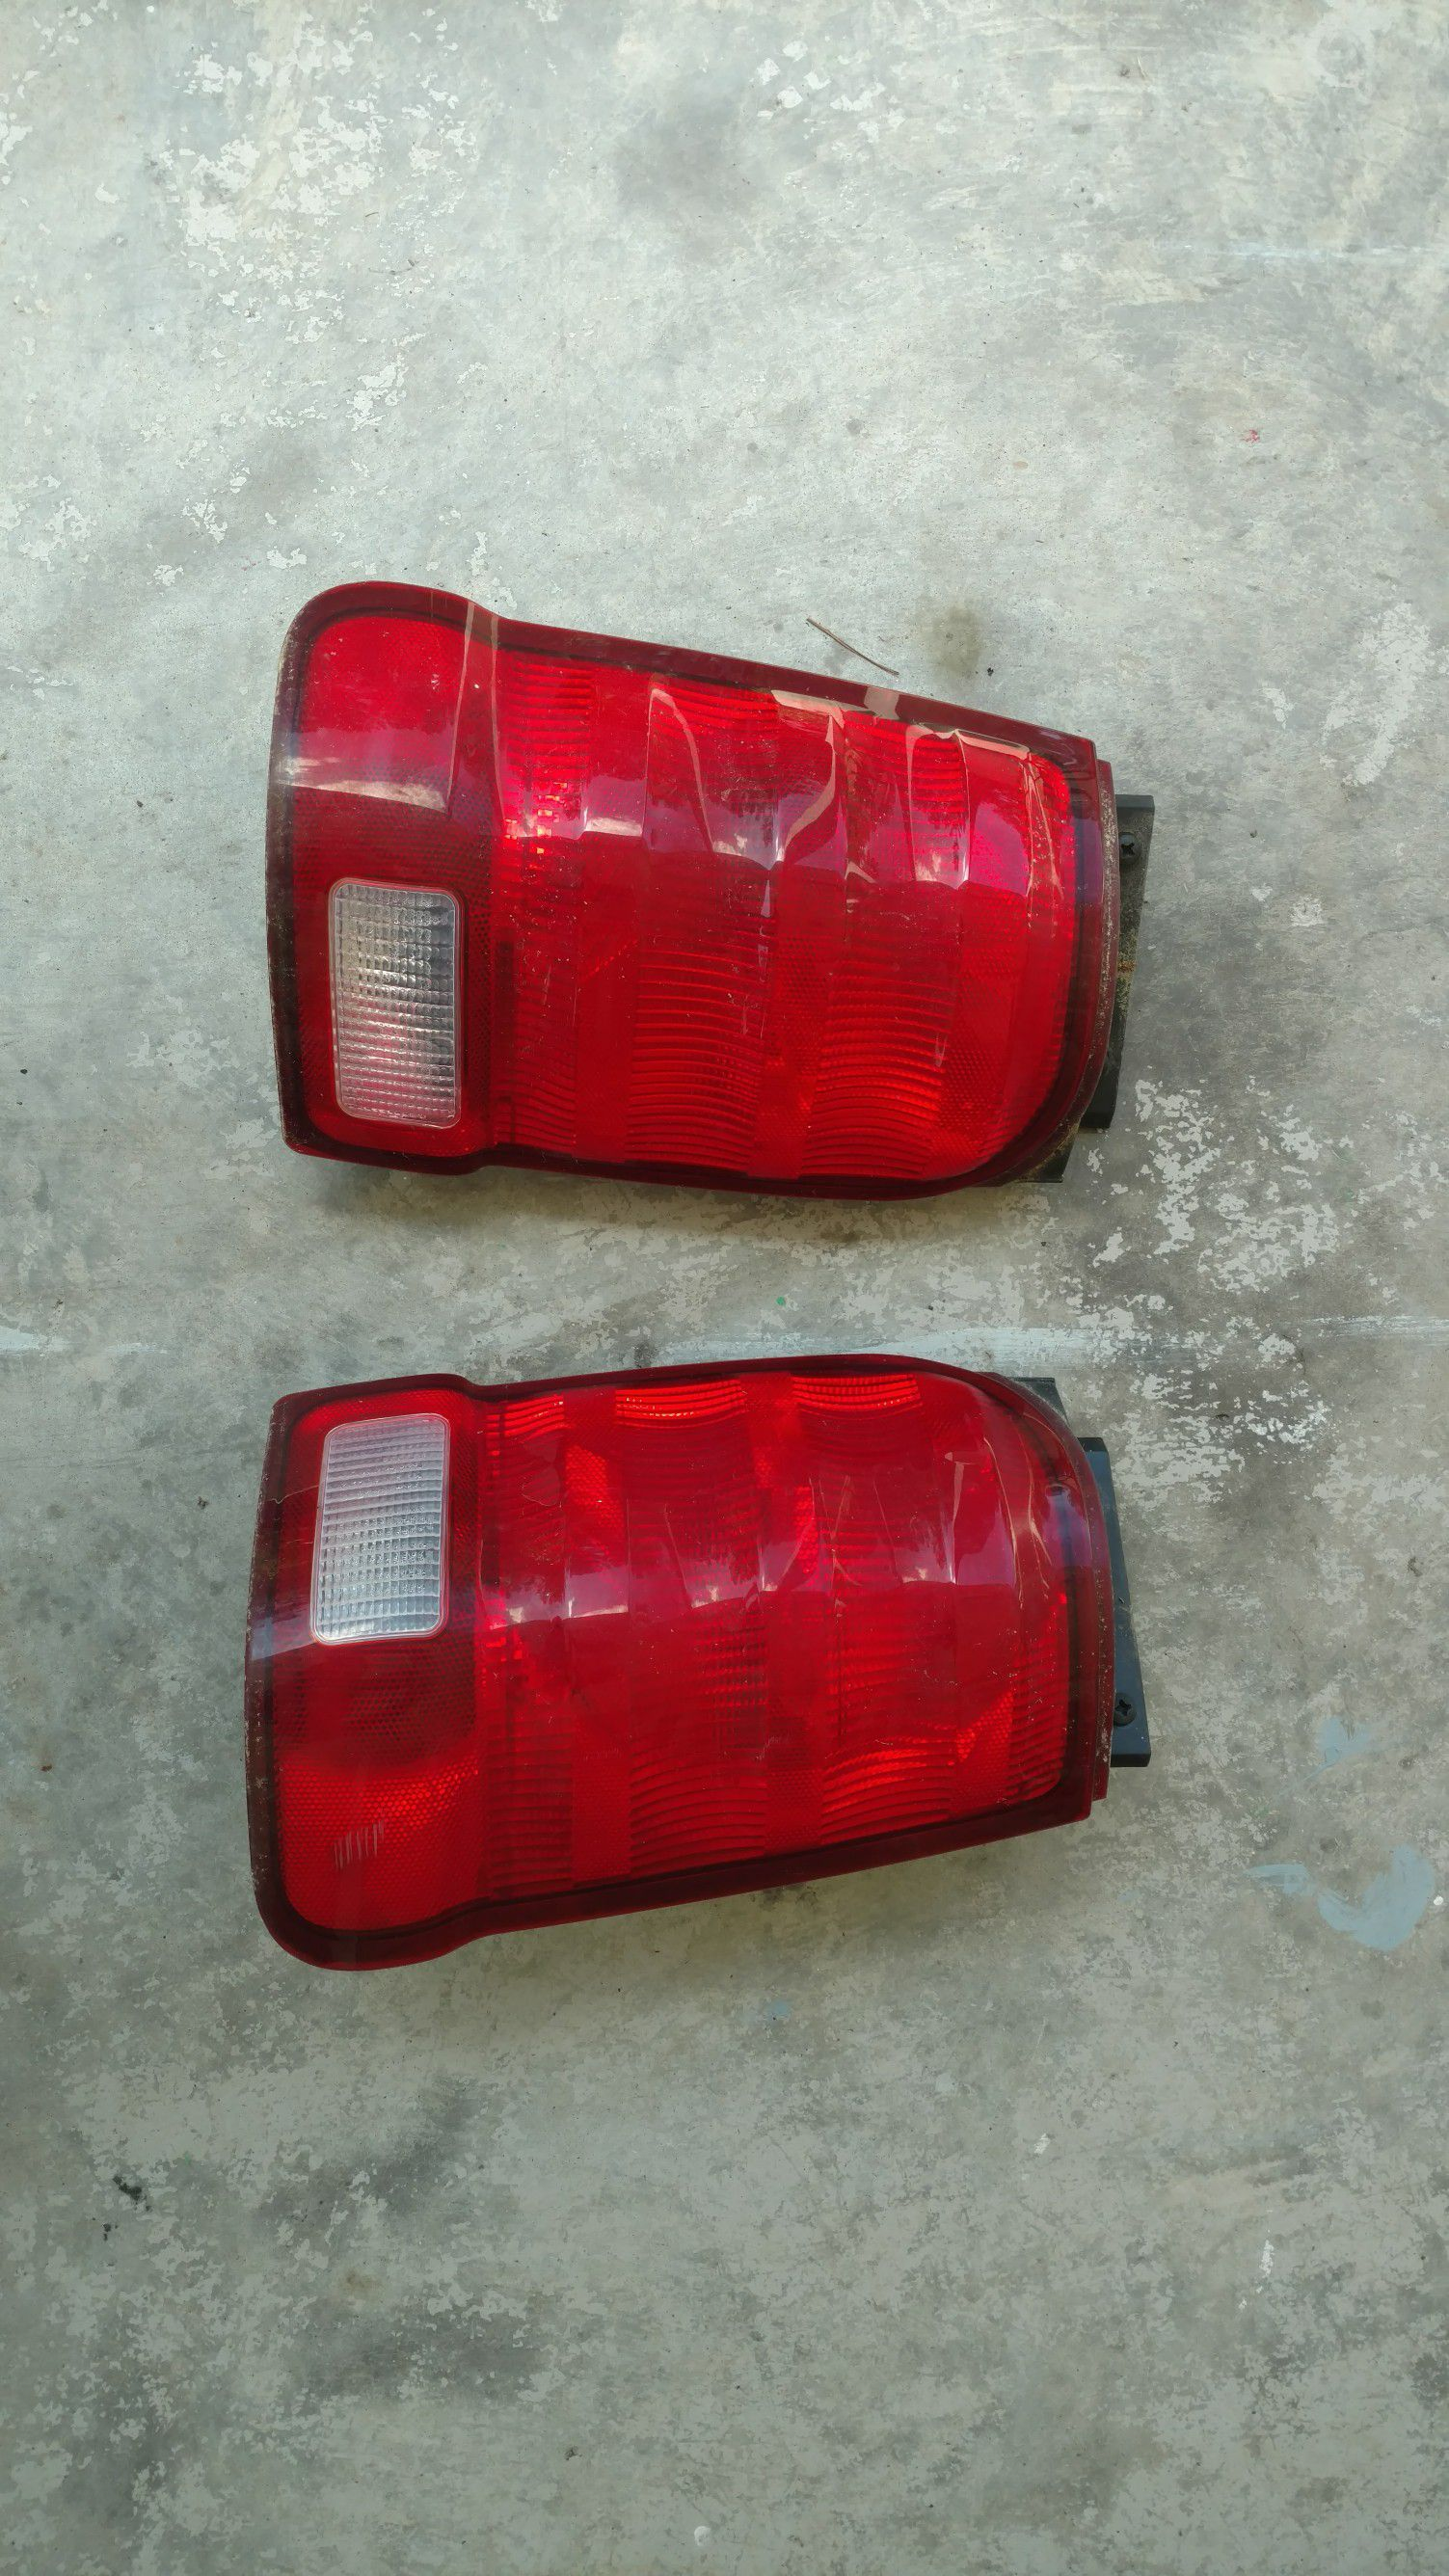 02 Explorer sport tail lights stock complete ready to plug in and use